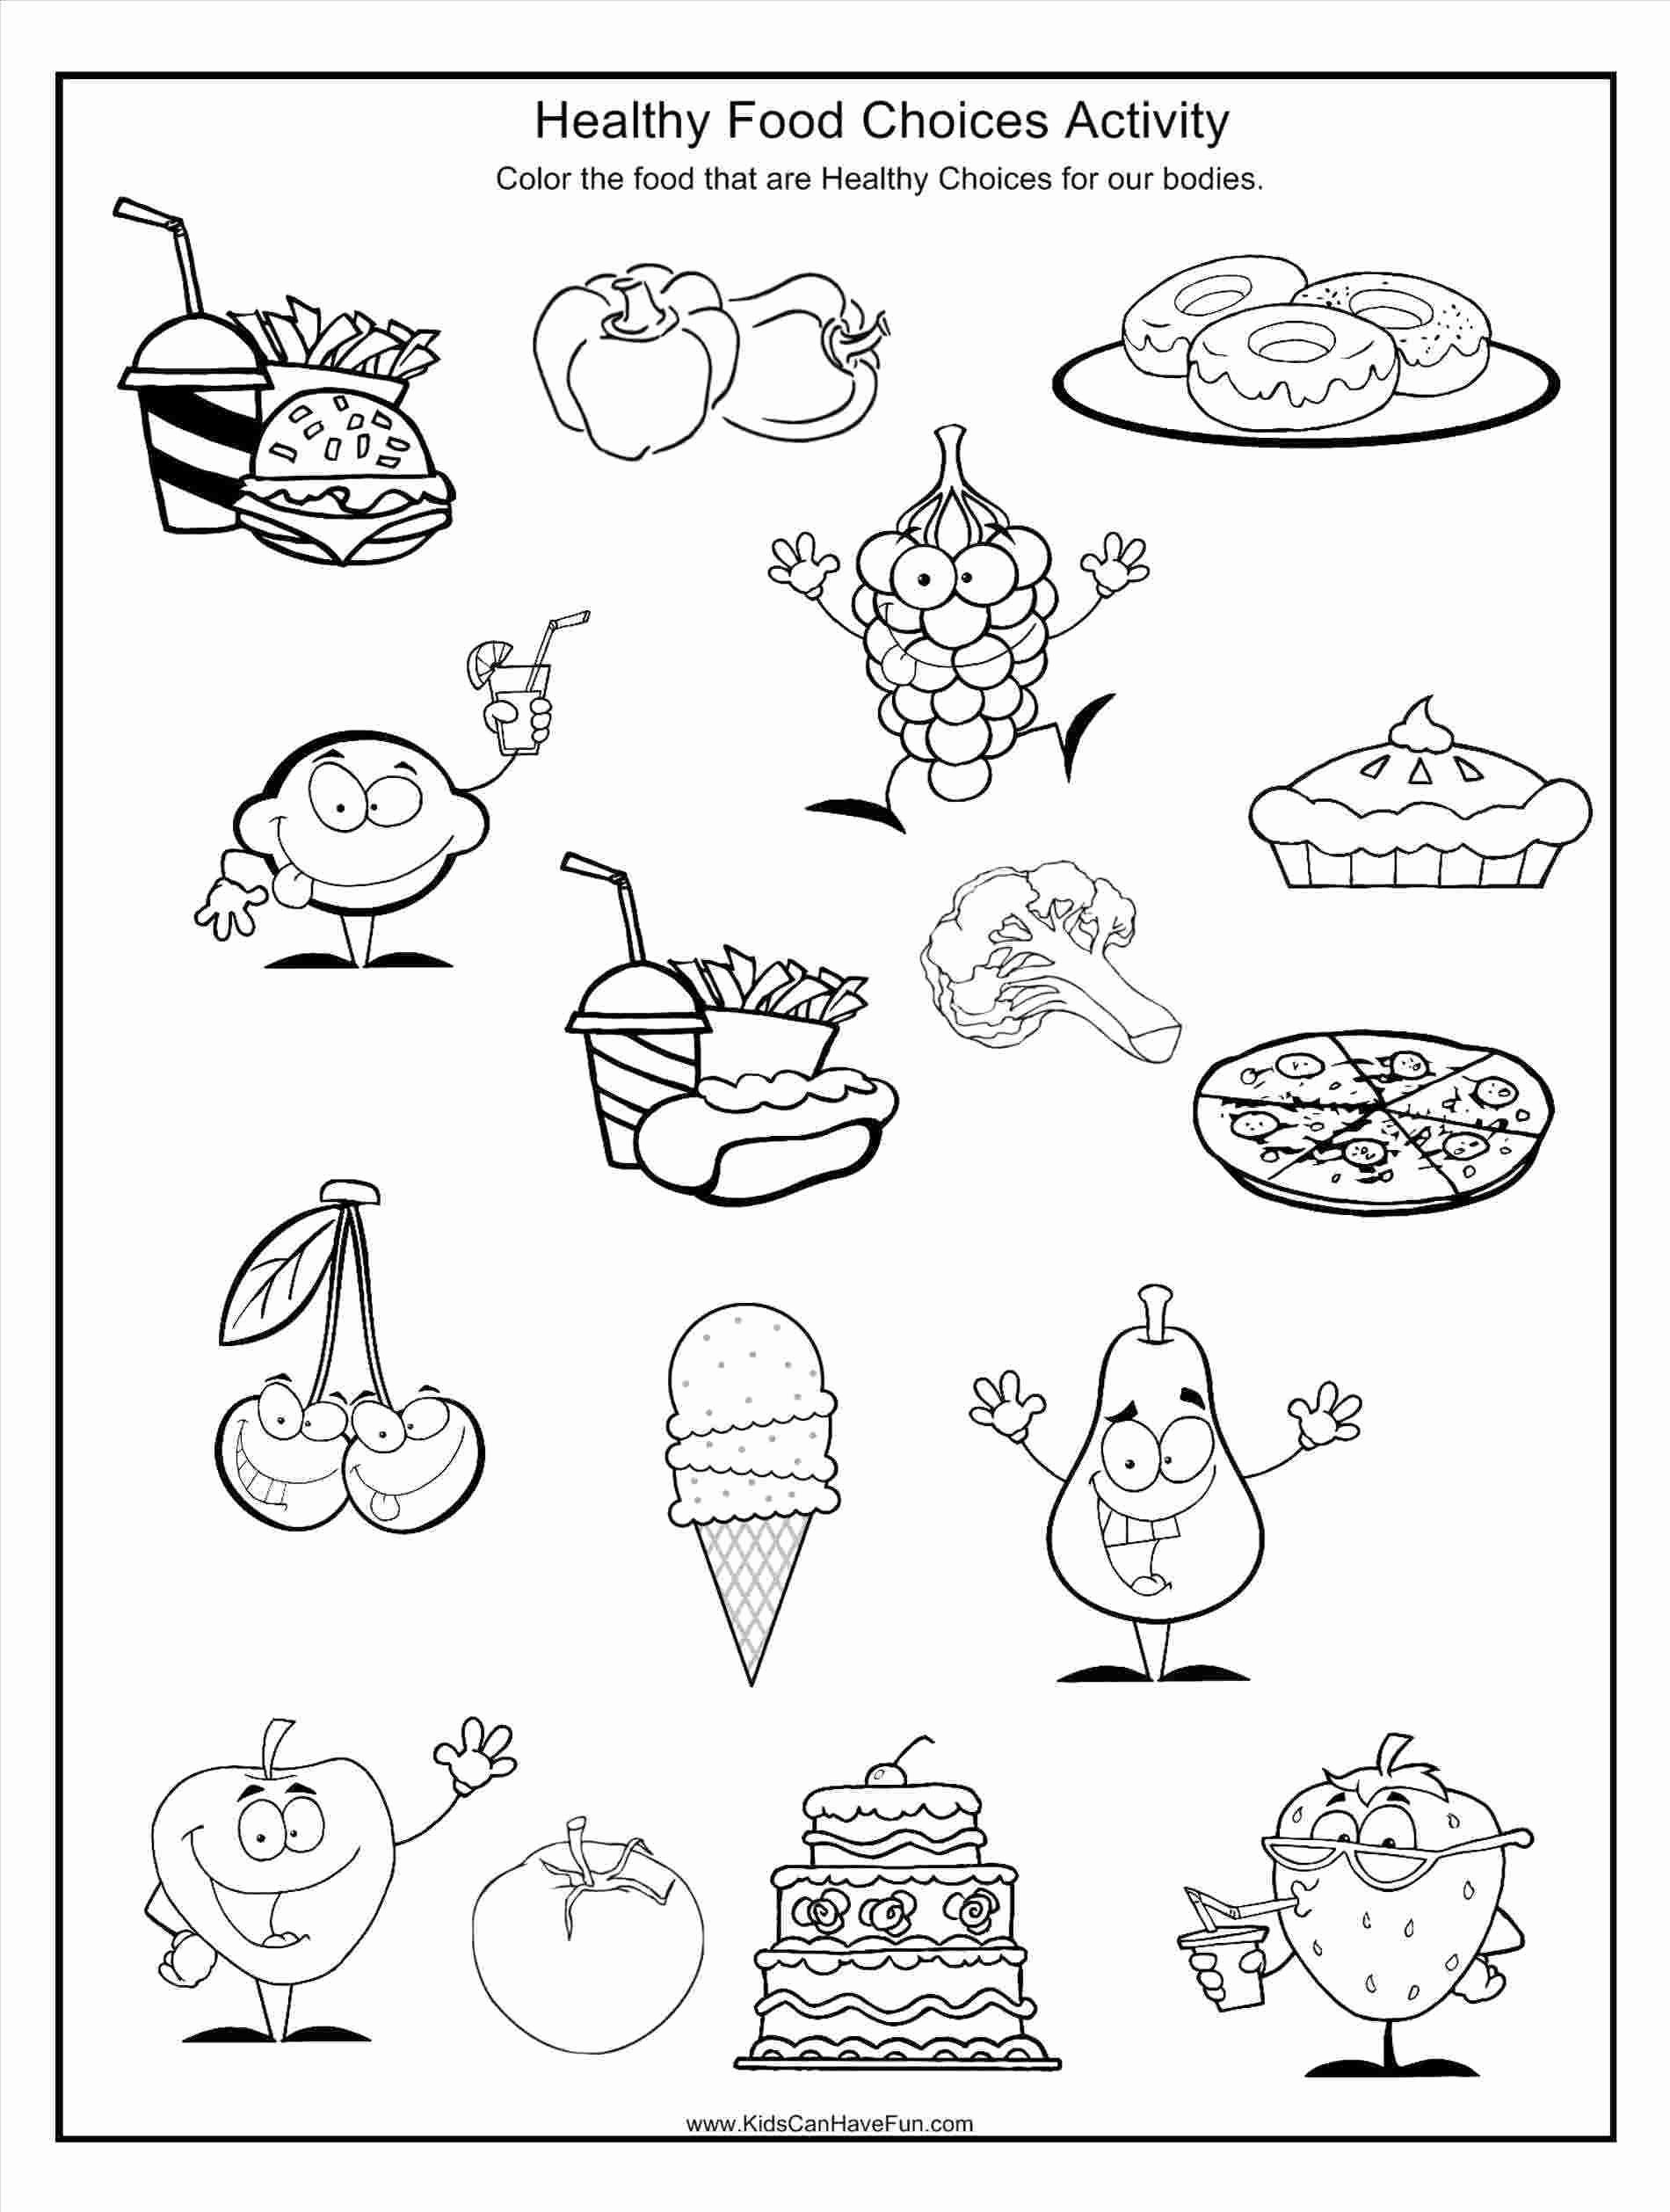 Nutrition Worksheets for Preschoolers Fresh Go Foods Coloring Healthy Food Fun Nutrition